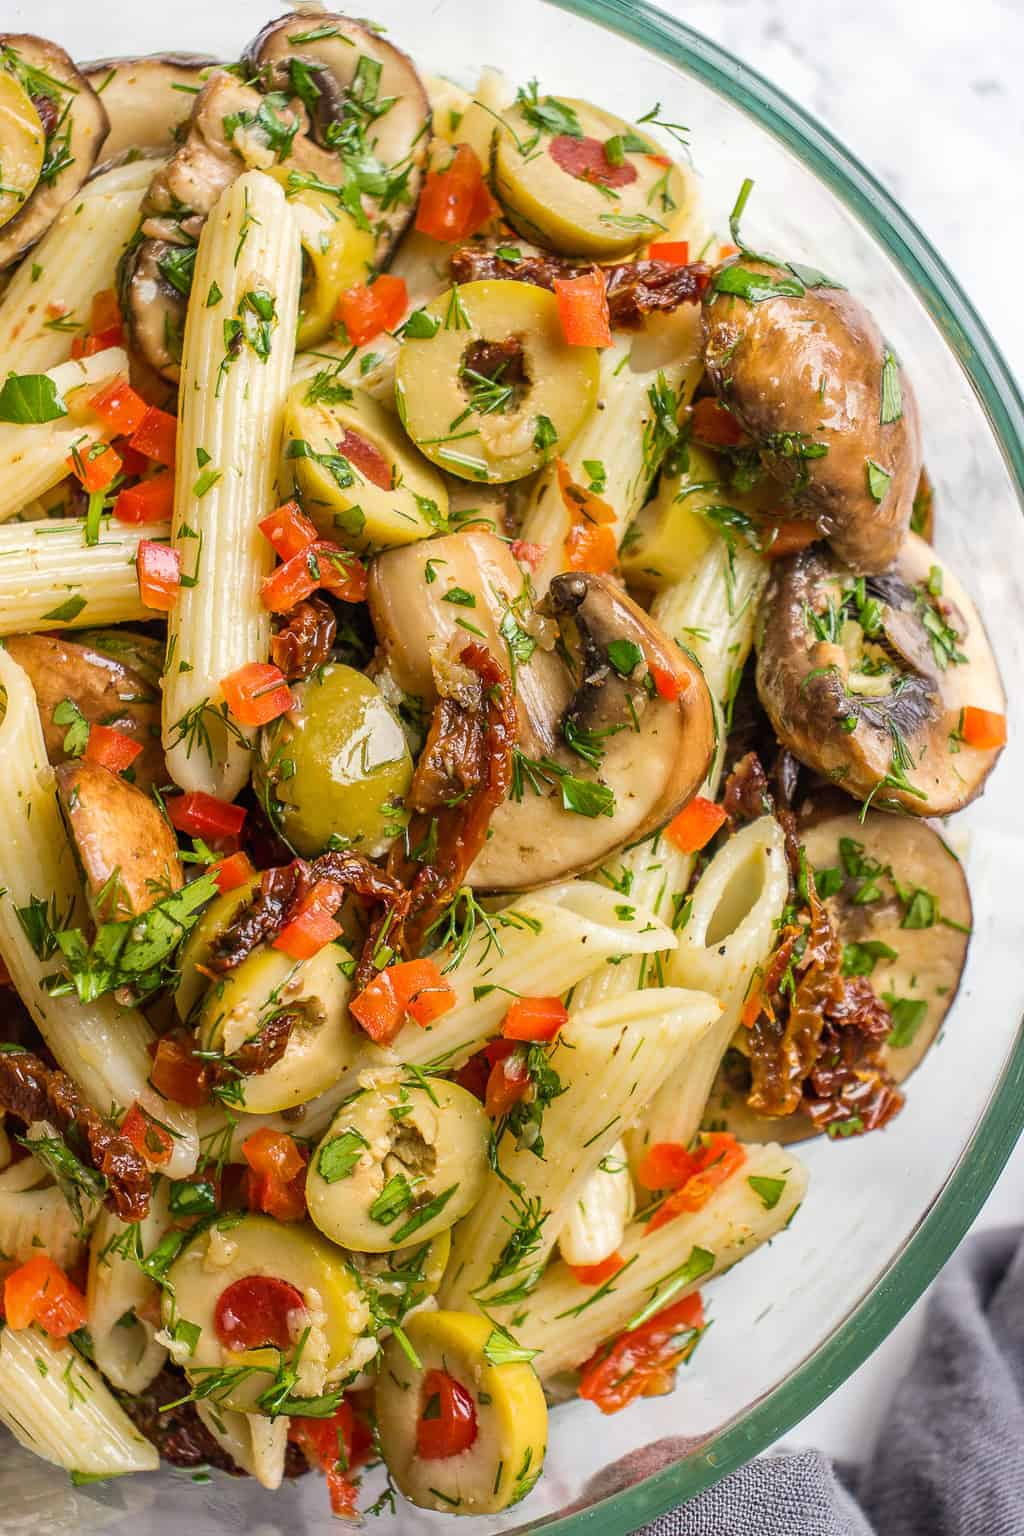 Marinated mushroom pasta salad in a bowl